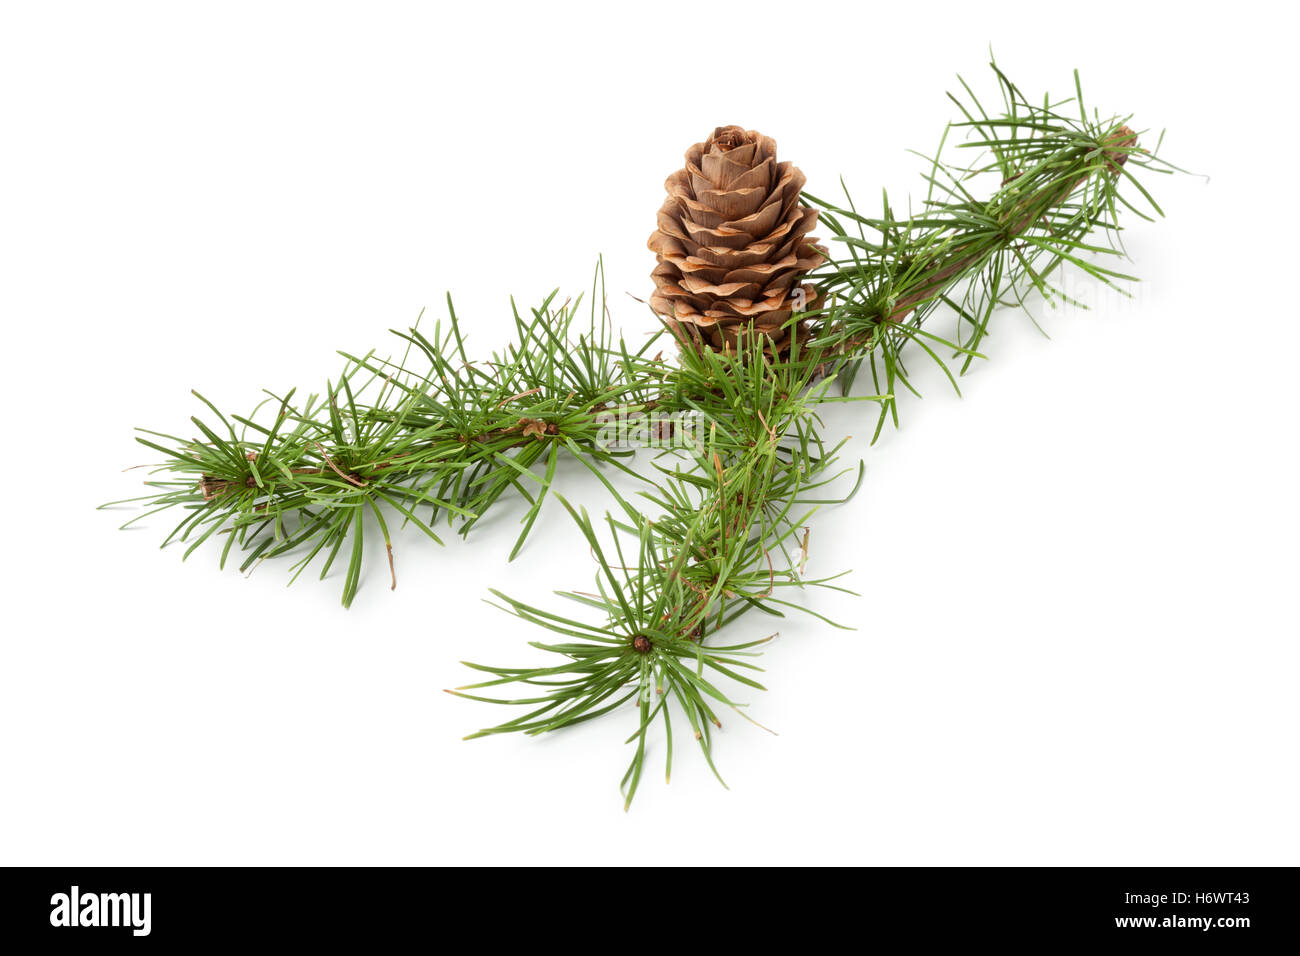 Conifer twig with cone for decoration on white background - Stock Image